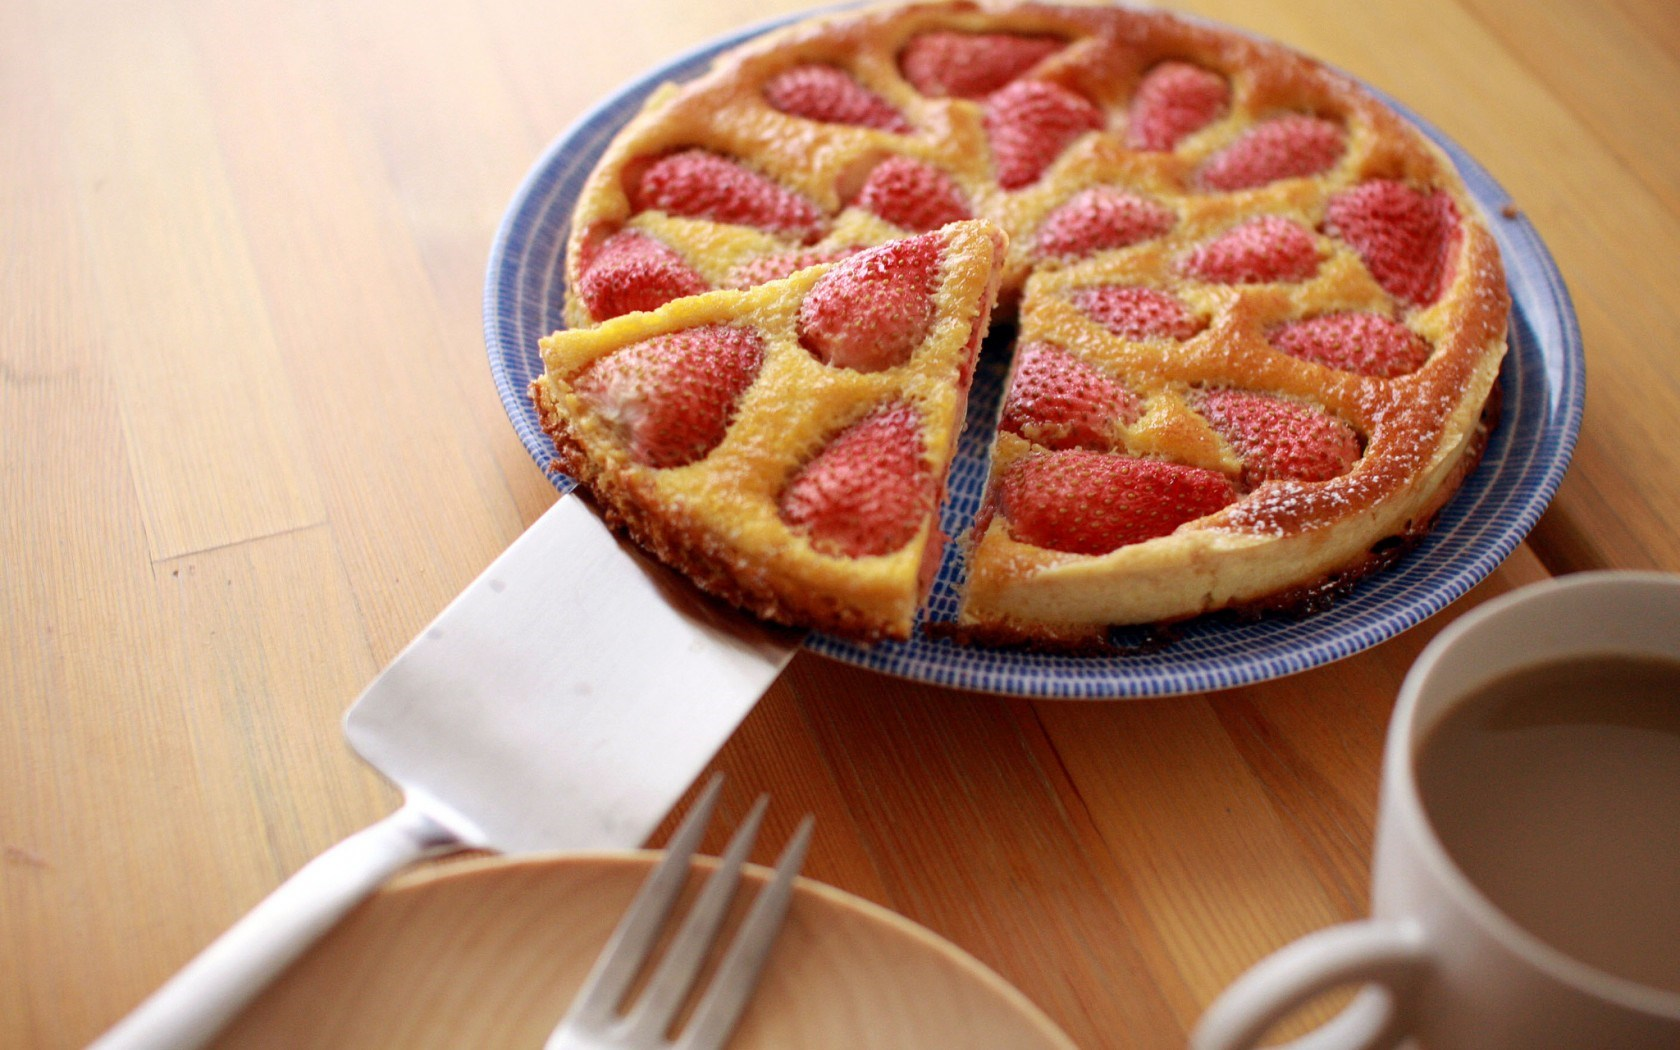 Cake Pastries Strawberries Table Plate